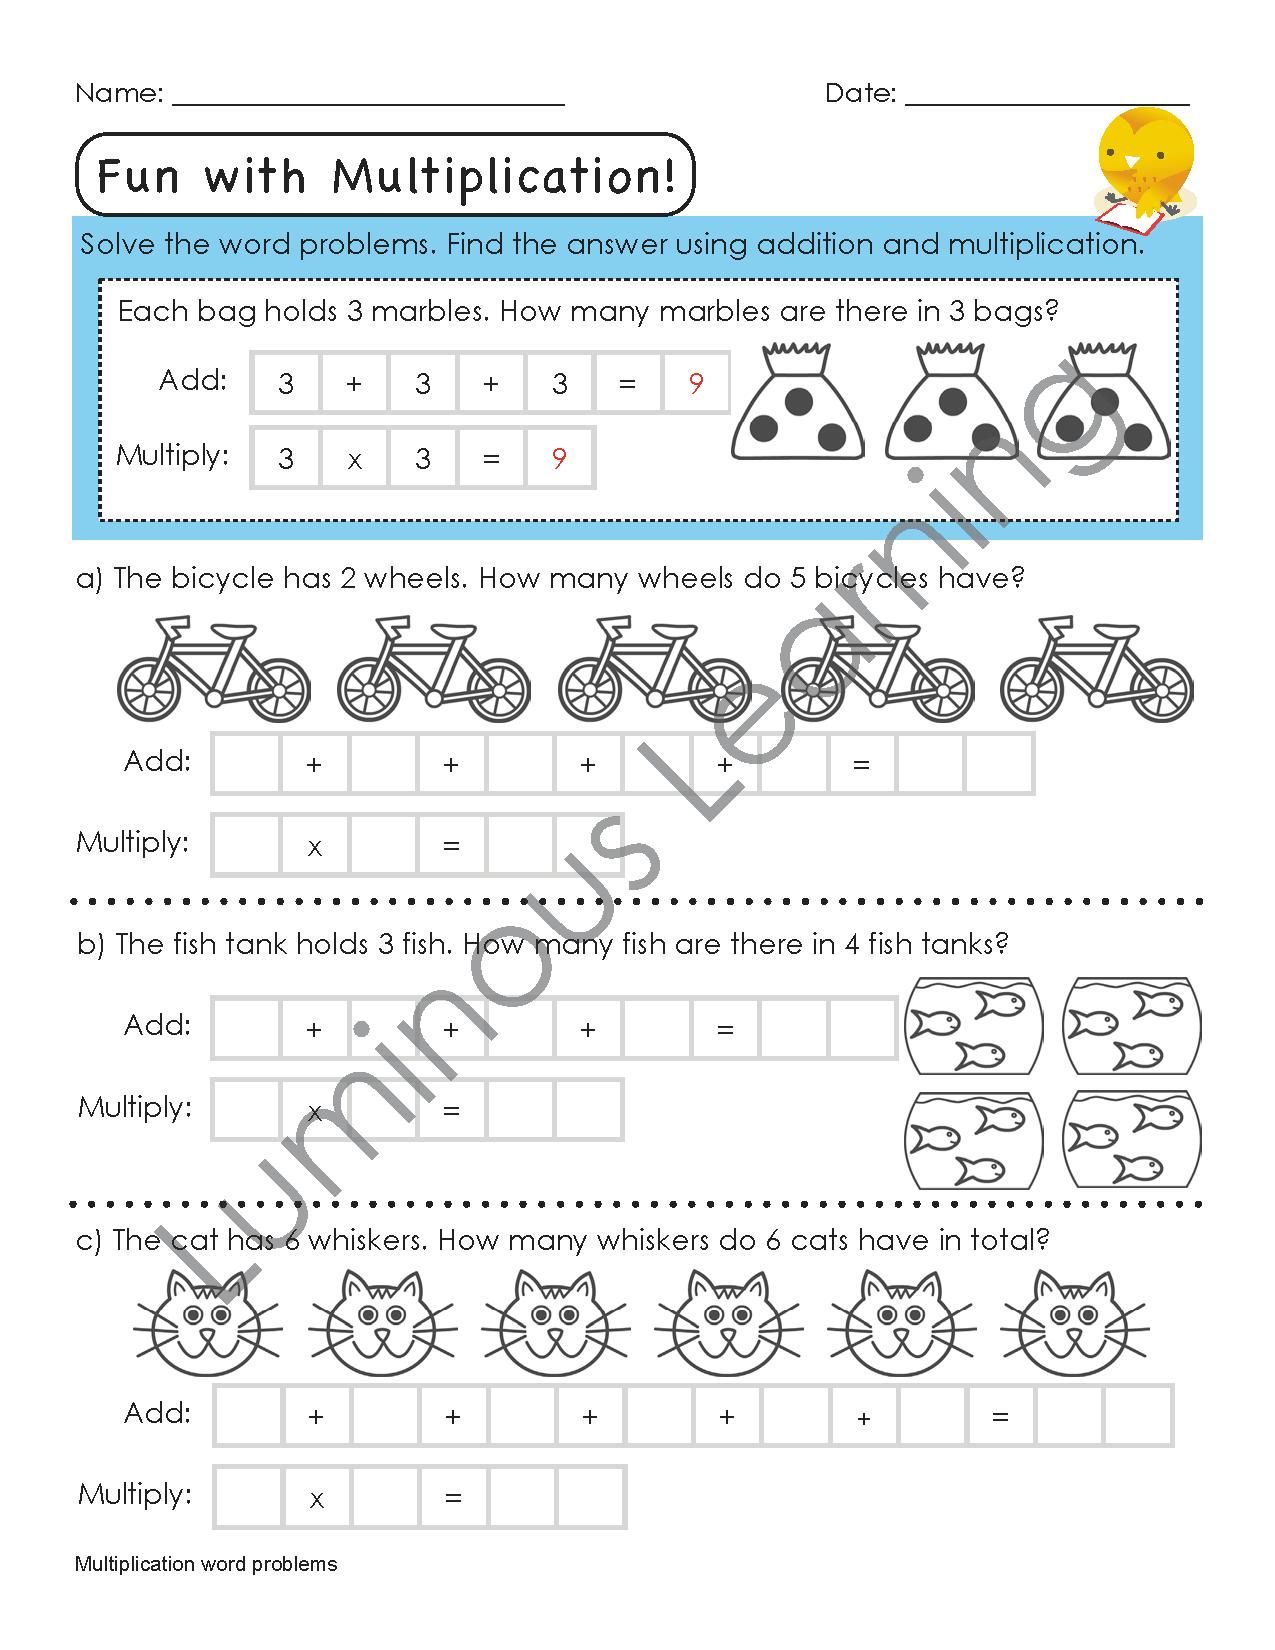 Luminous Learning Grade 3 Multiplication Workbook Is Designed With Built In Supports To Help